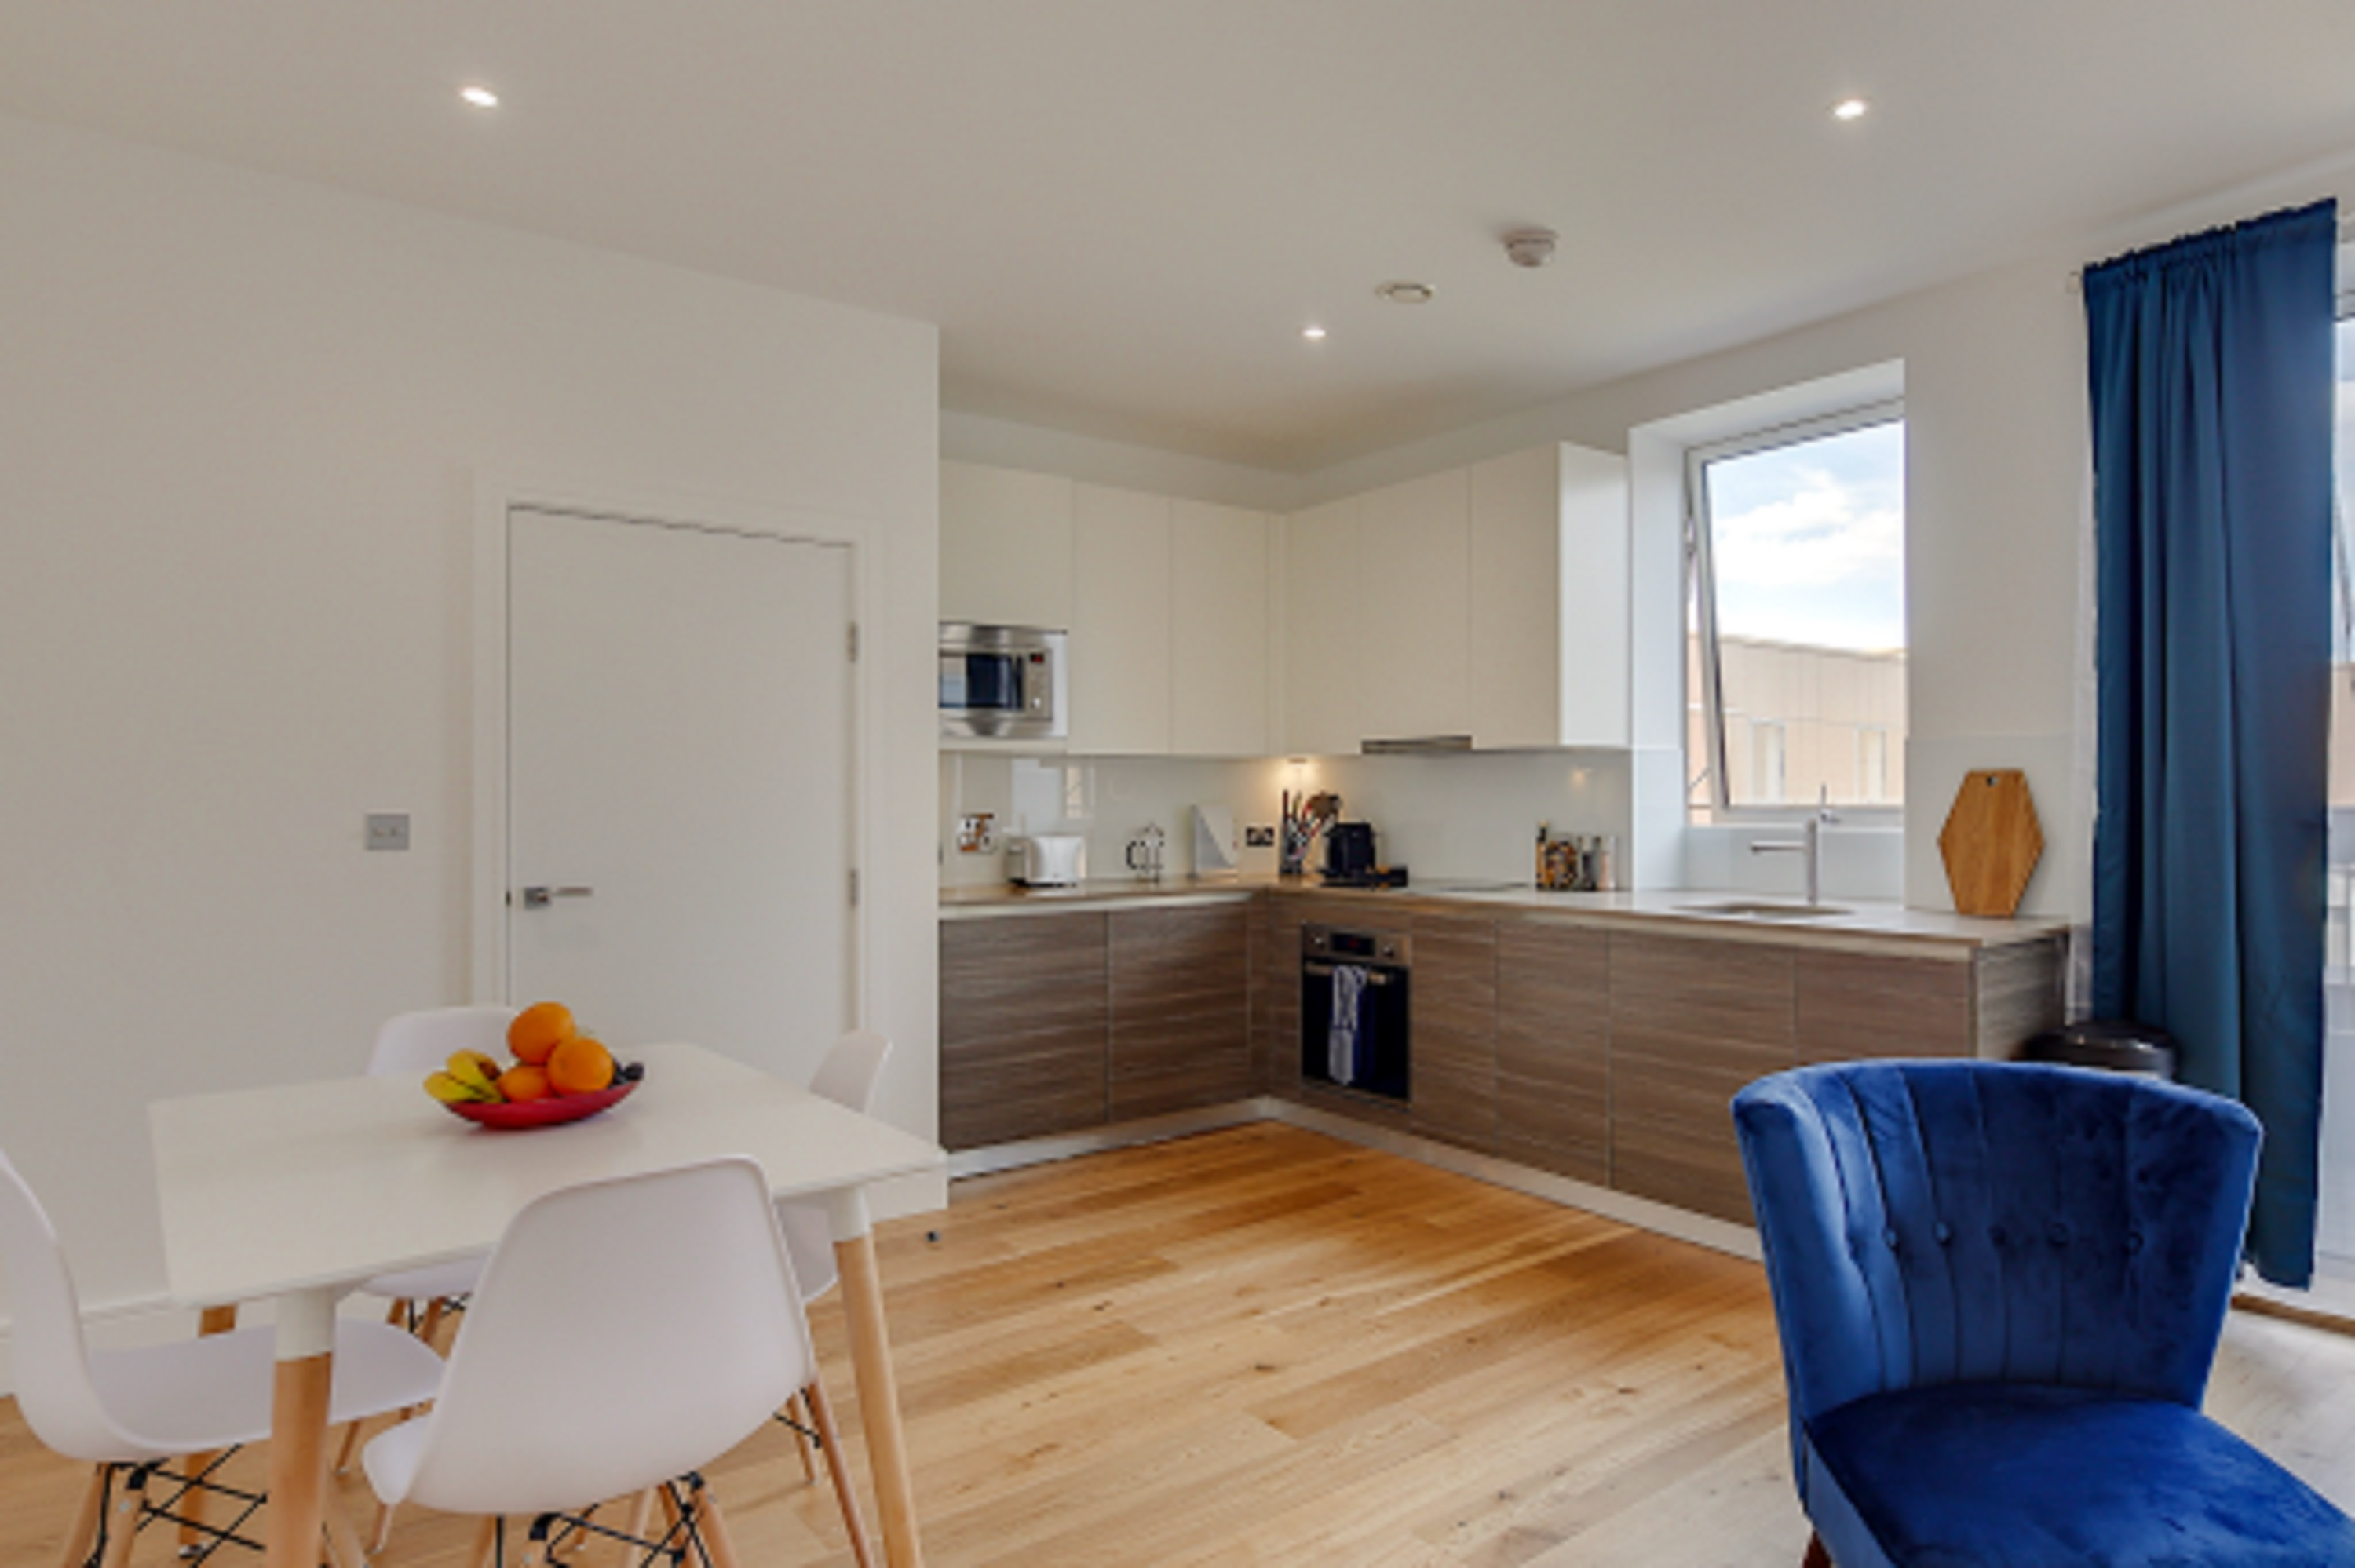 Heathrow One-Bedroom Apartments, London